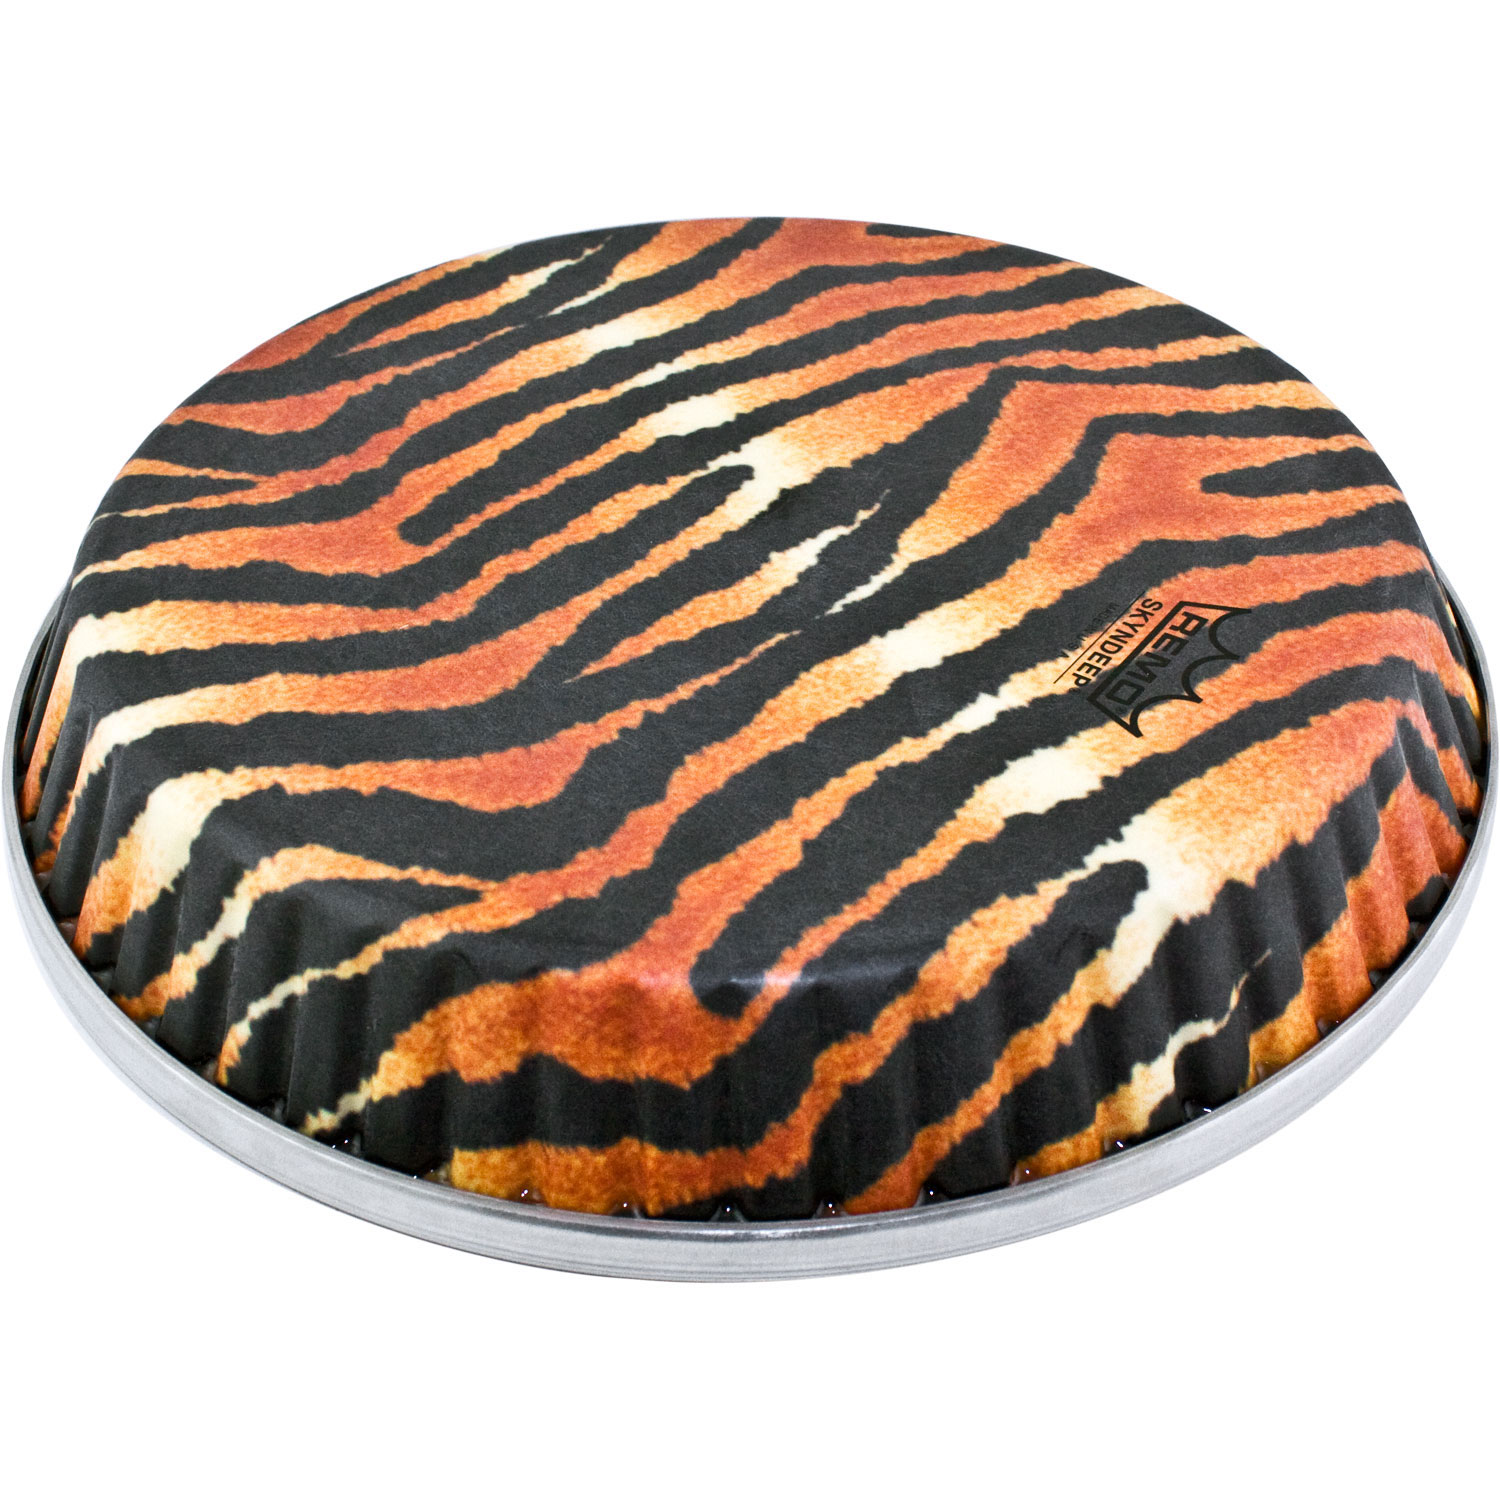 "Remo 10.75"" Symmetry Skyndeep Conga Drum Head (D2 Collar) with Tiger Stripe Graphic"